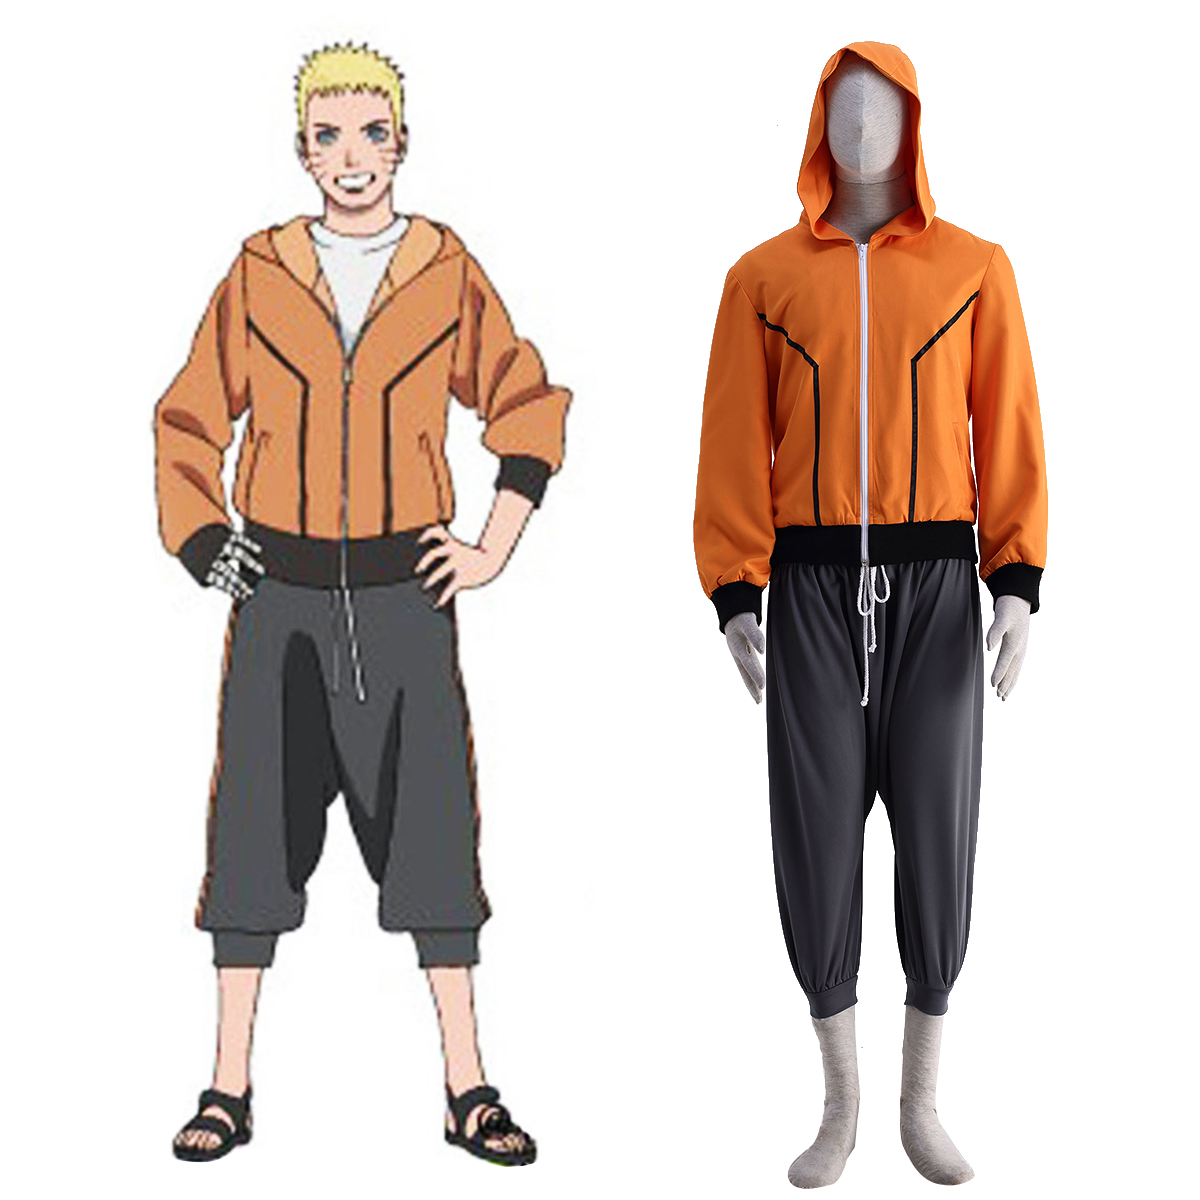 Naruto The Last Naruto 9 Anime Cosplay Costumes Outfit